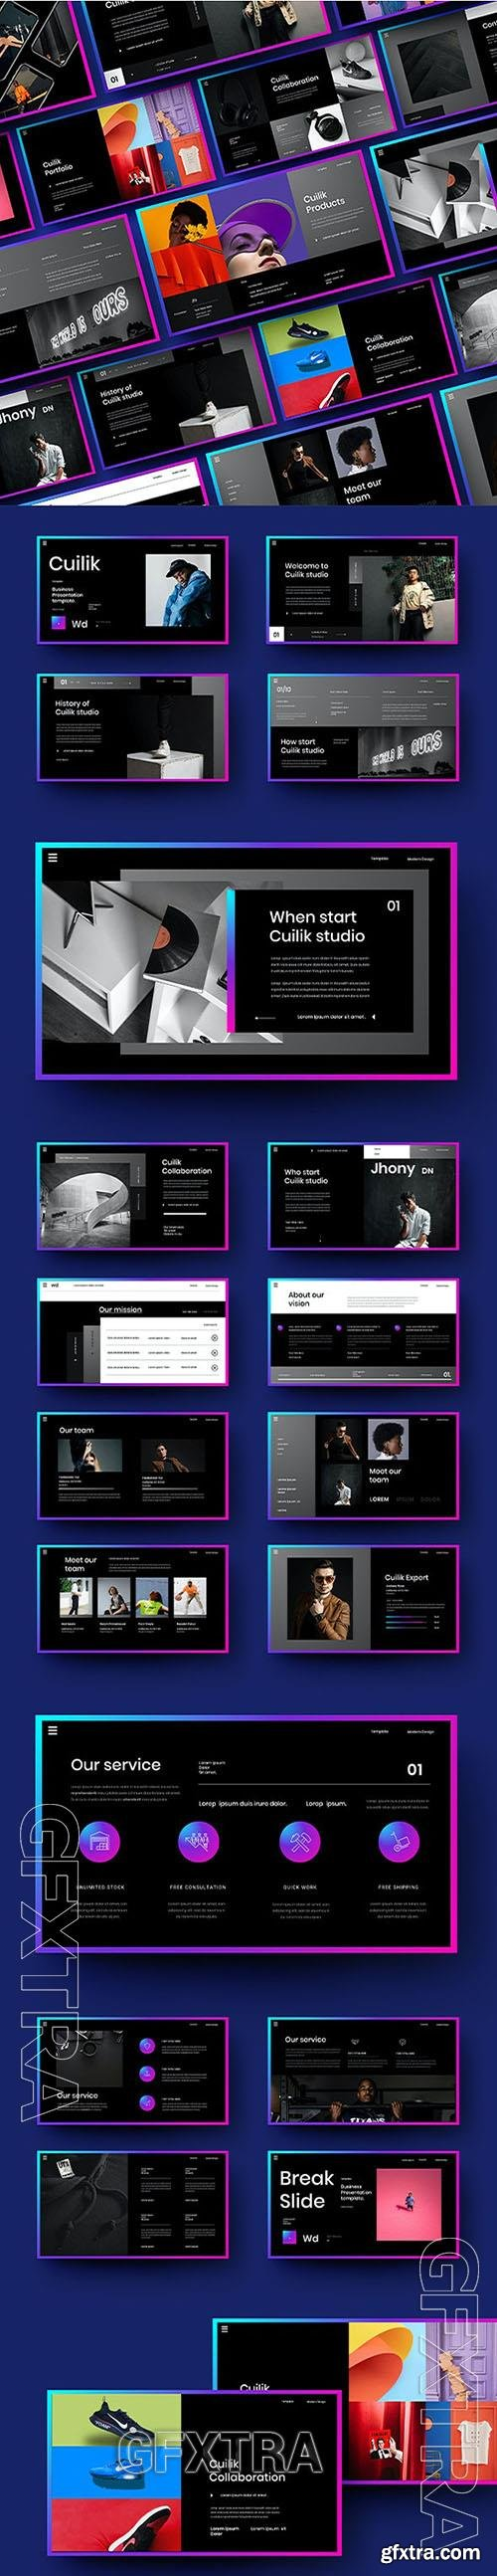 Cuilik - Business Powerpoint, Keynote and Google Slides Template